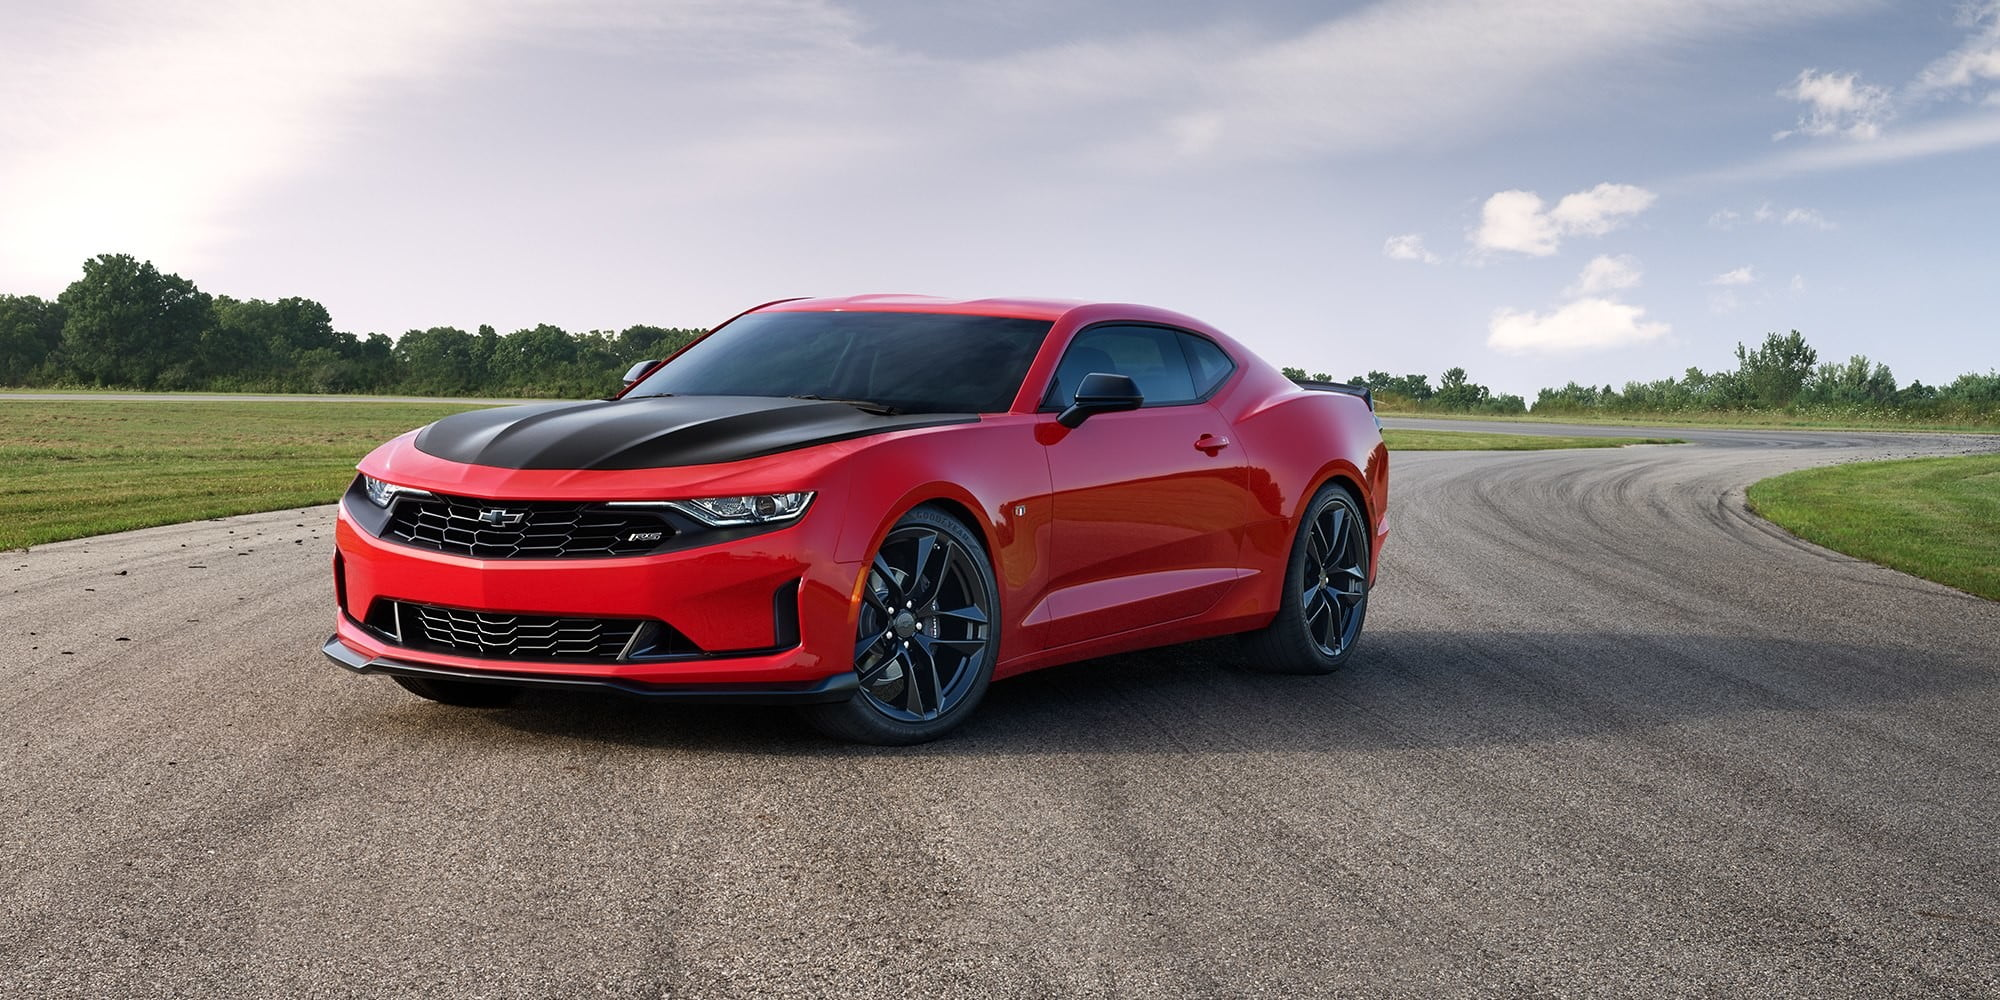 Camaro Vs Mustang Price Specs Performance And More